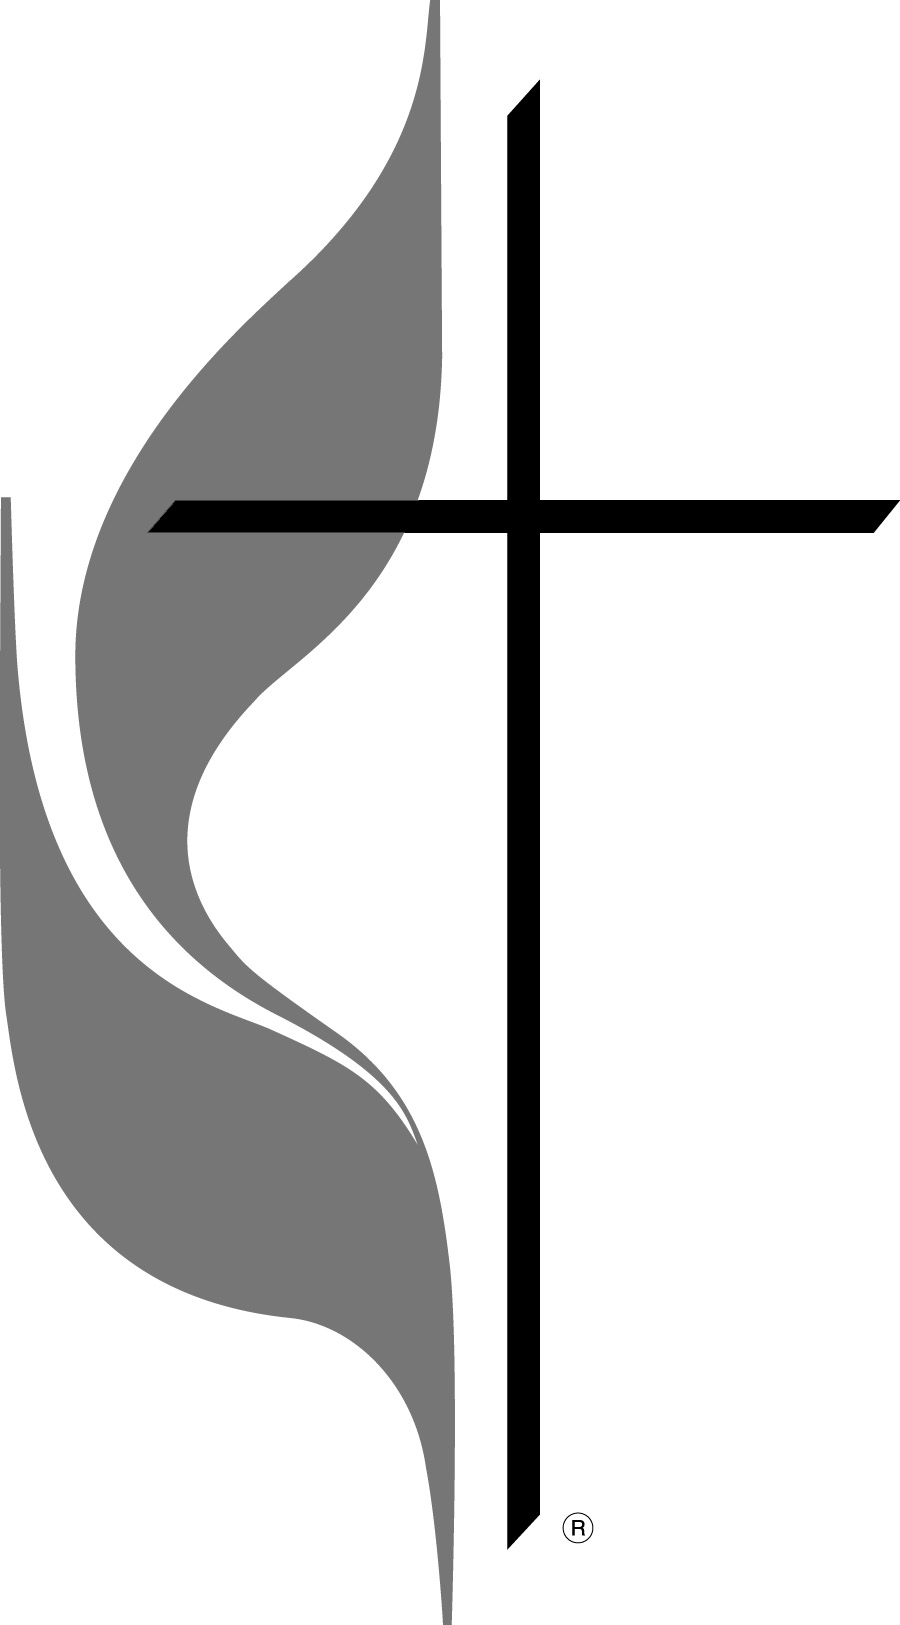 united methodist church logo flame and cross vector and clip art rh clipartsource today Cross and Flame Clip Art united methodist cross and flame clipart